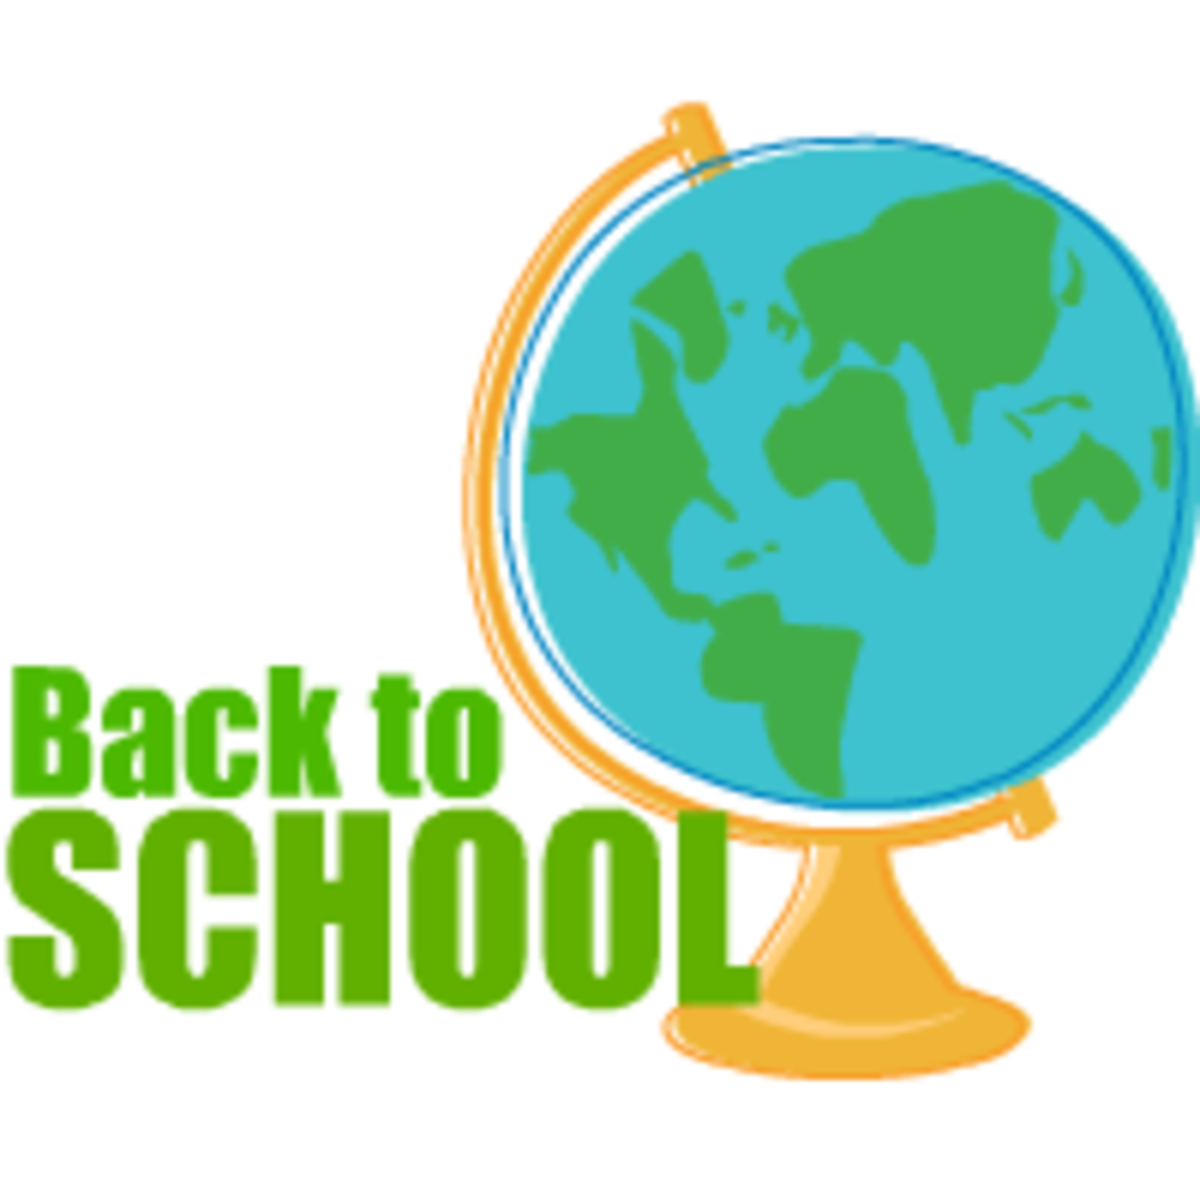 Back to school clip art: globe